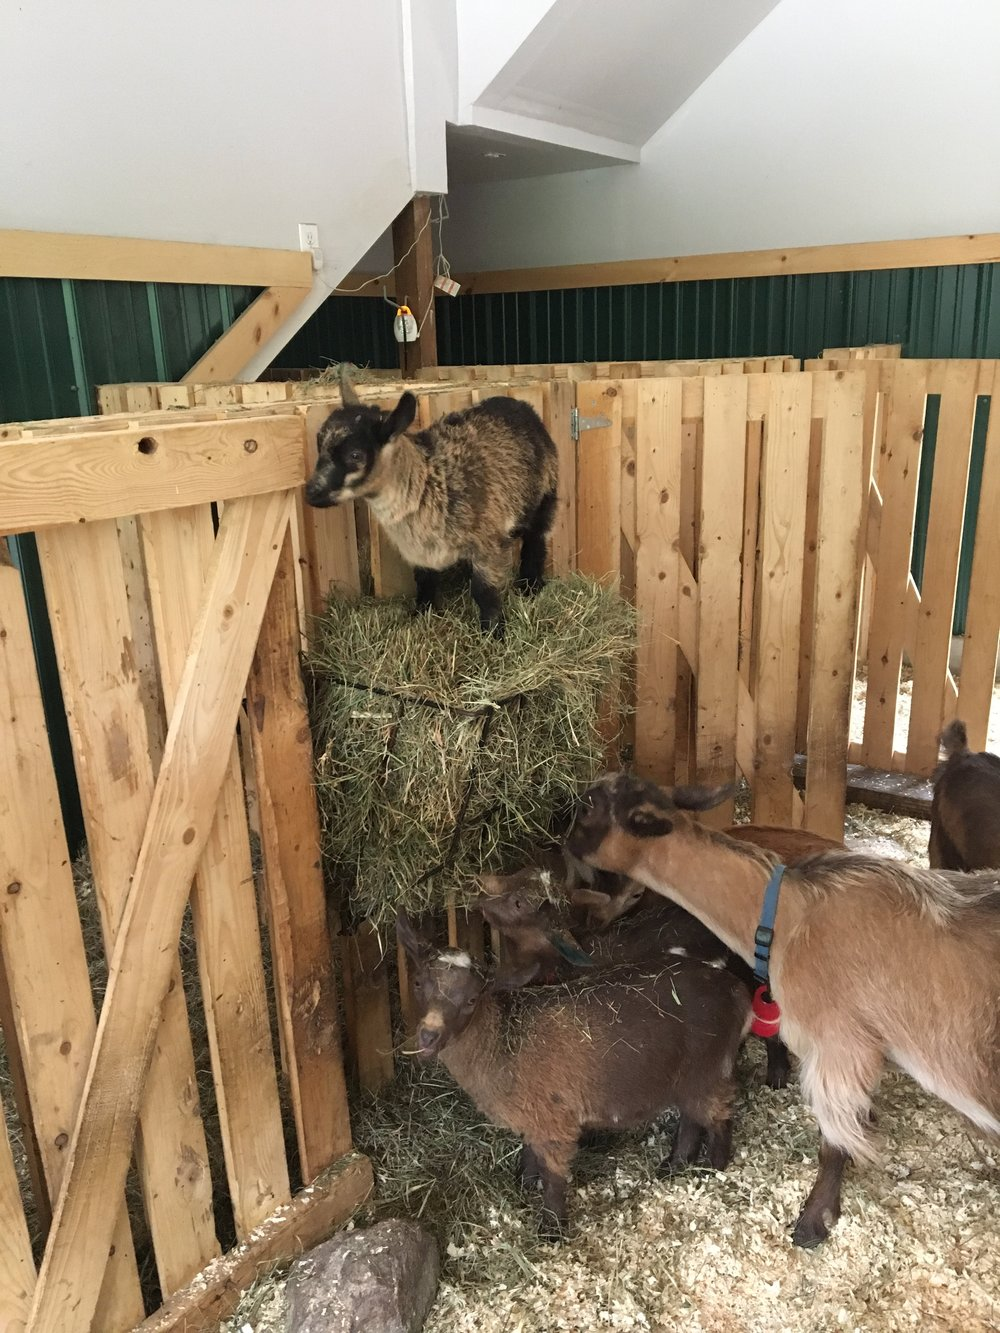 Goats play on hay bails